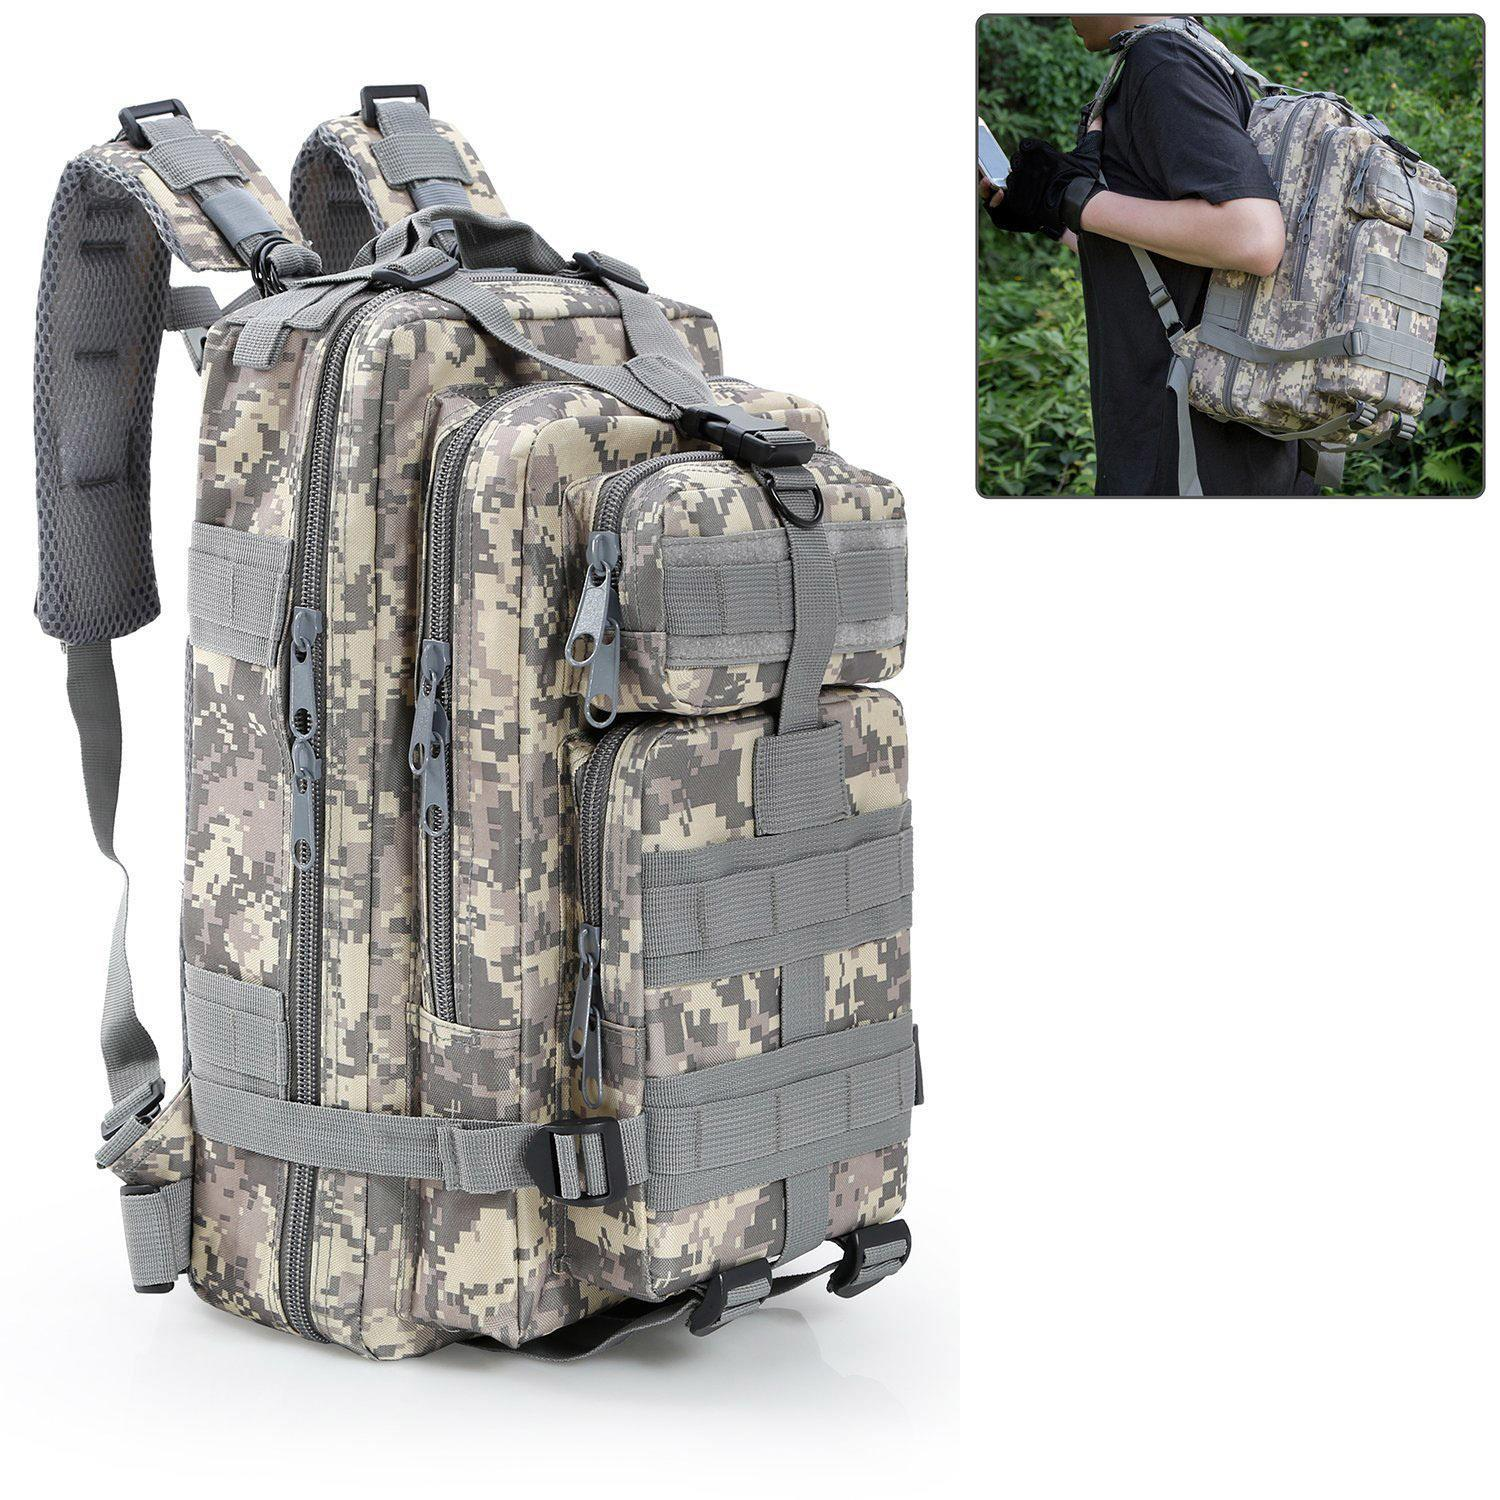 3P Tactical Outdoor Mountaineering Backpack Sports Camouflage Backpack Camping Hiking Trekking Climbing...